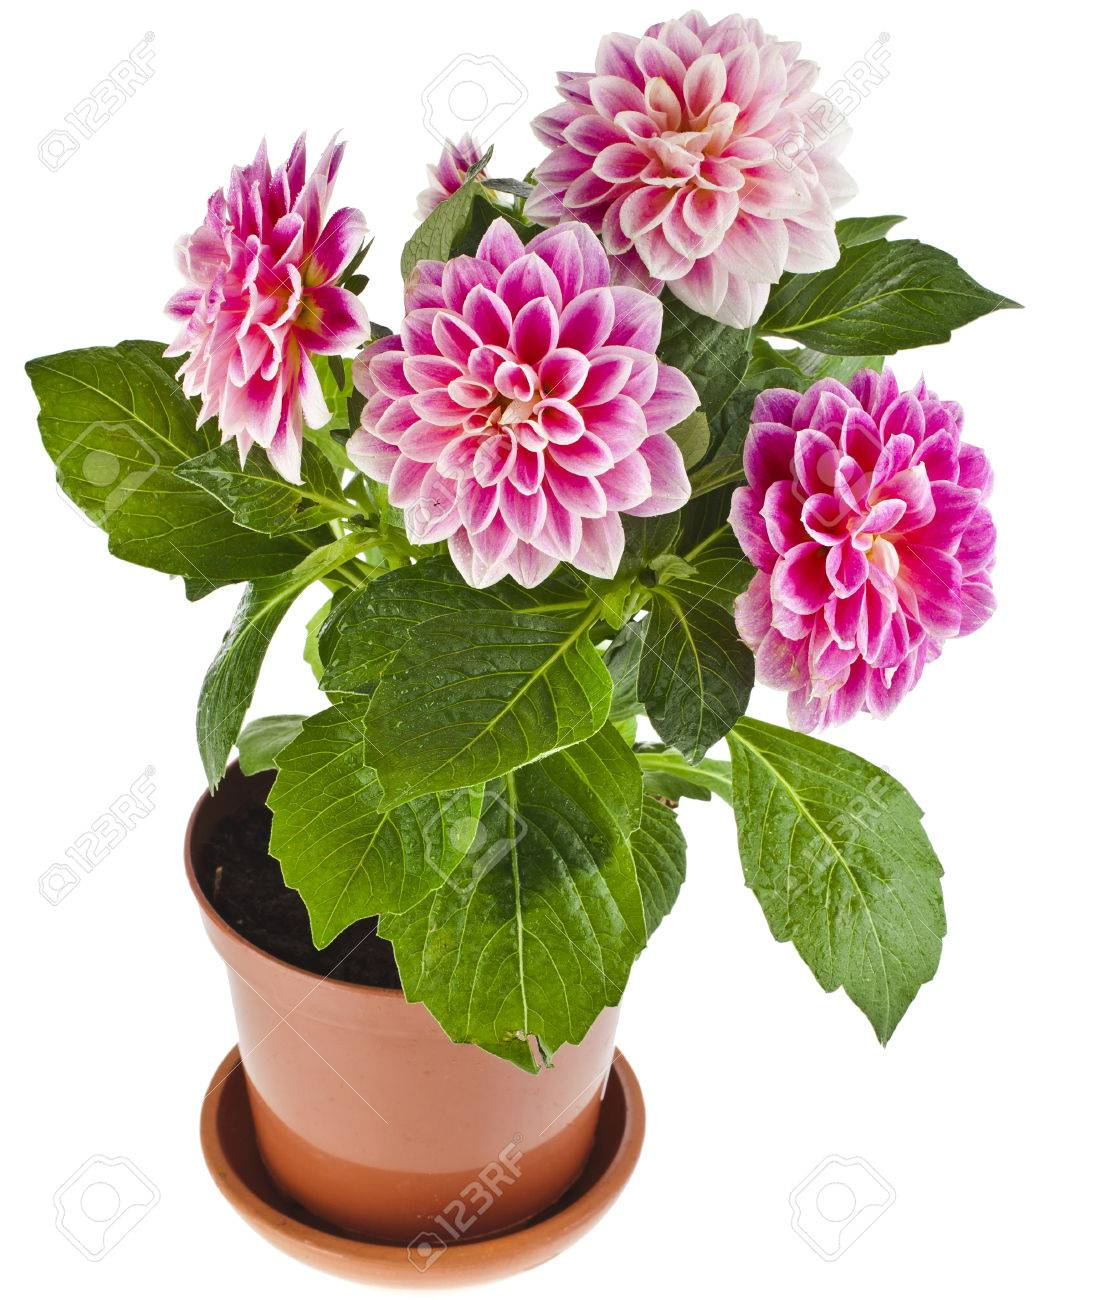 Dahlia Planten Colored Dahlia Flowers Plant In A Pot Isolated On White Background